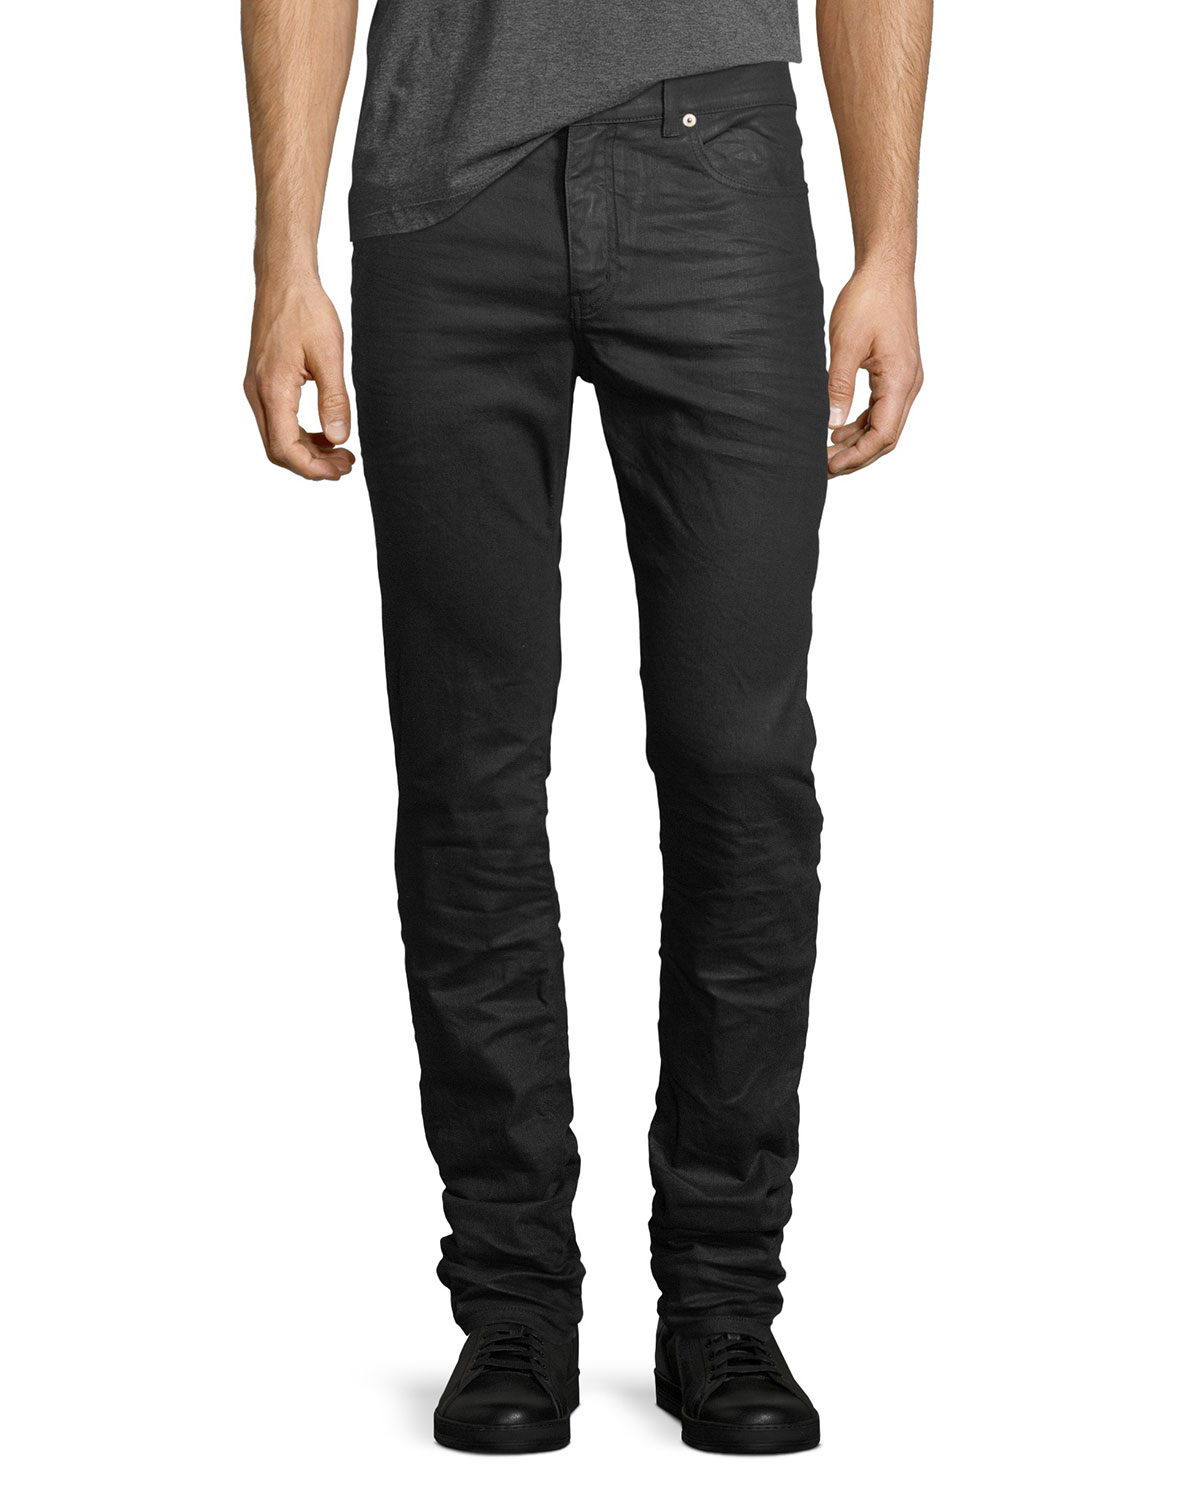 Coated Denim Skinny Jeans